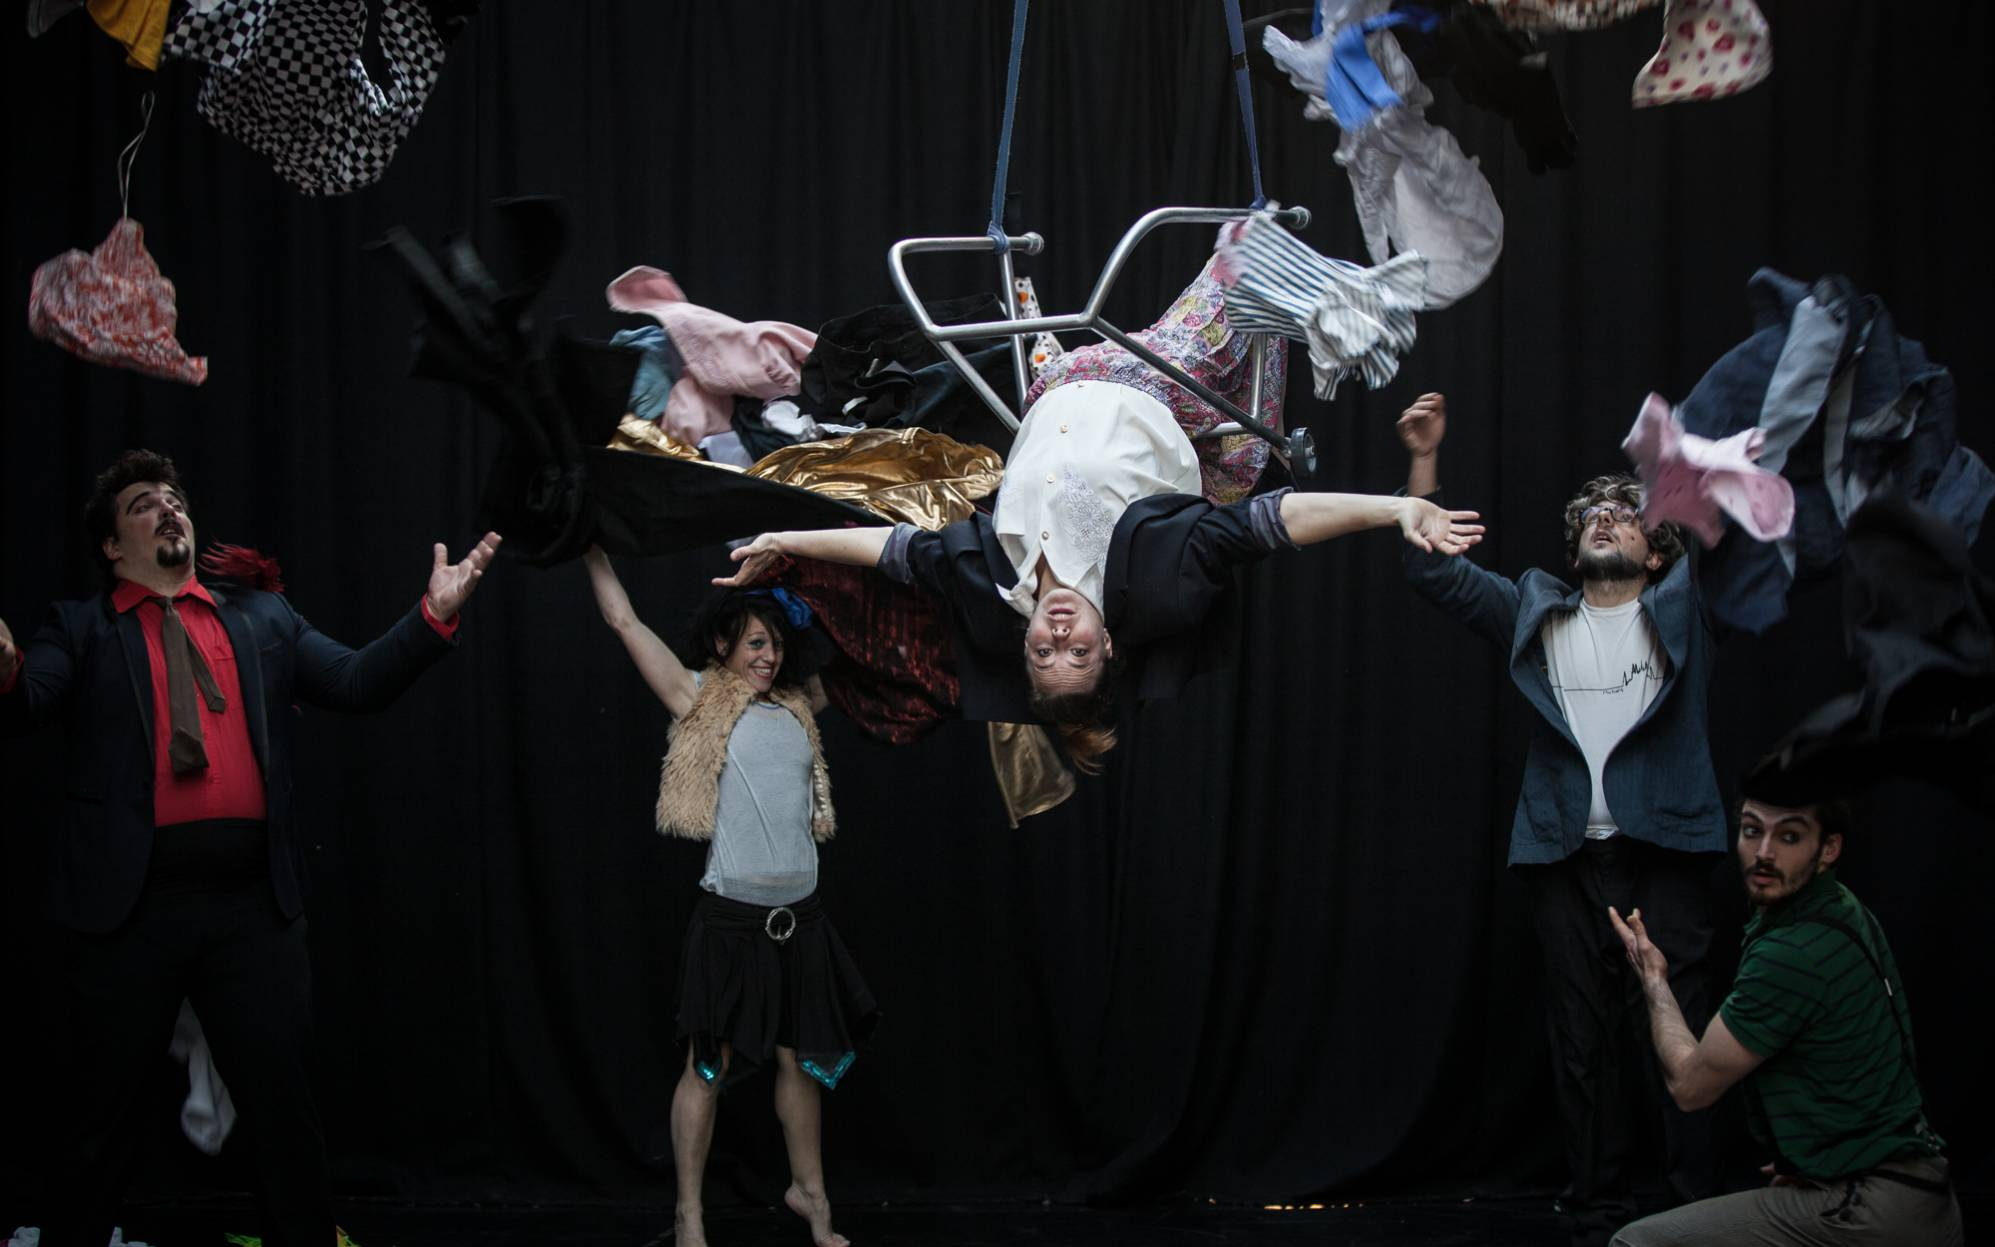 Acrobats flying in the air